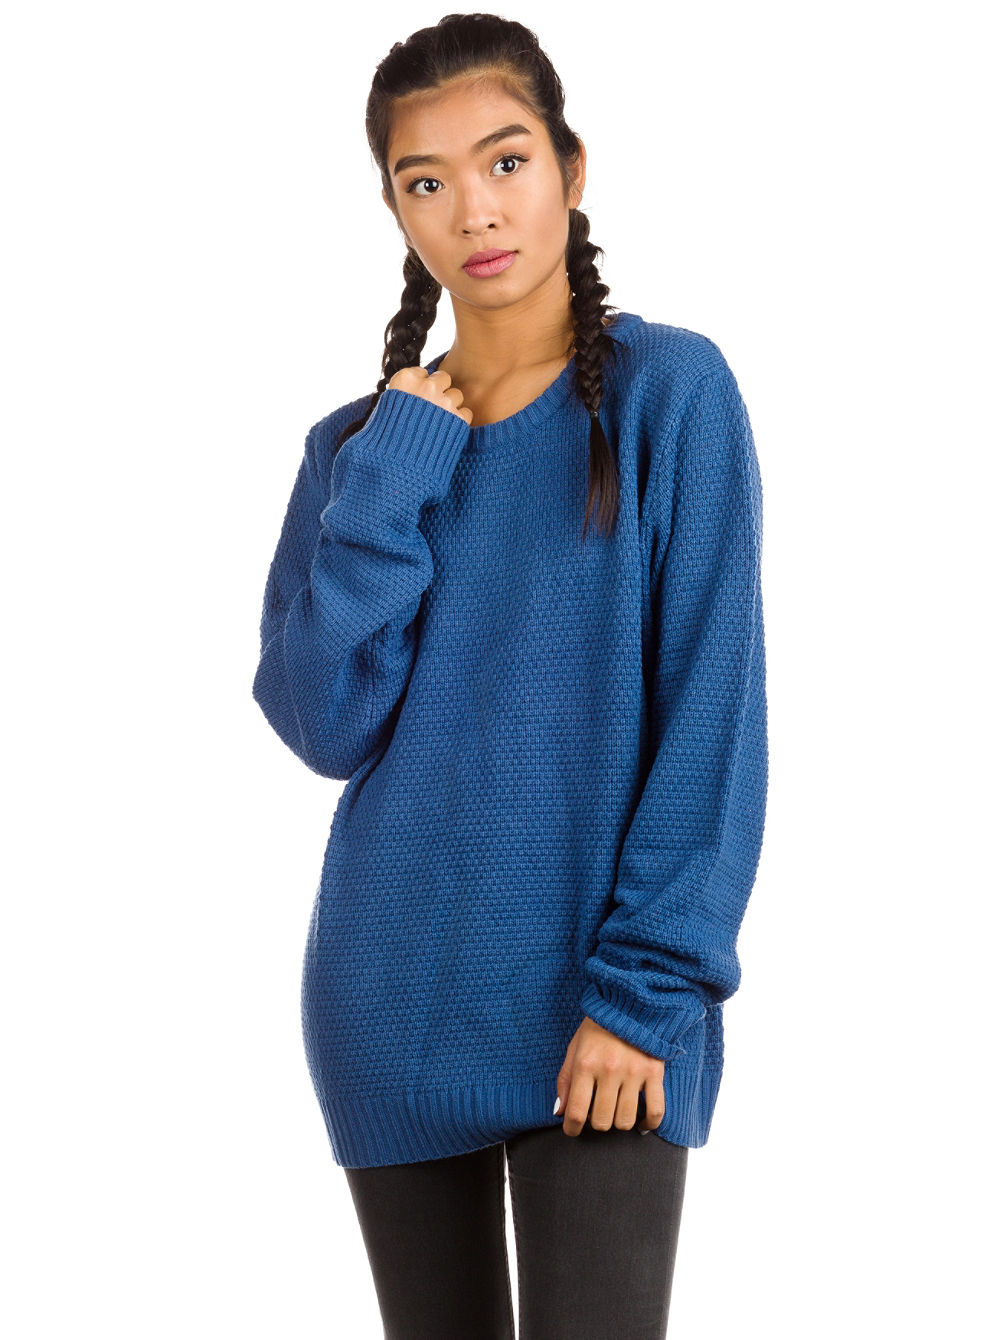 The Echoe Sweater